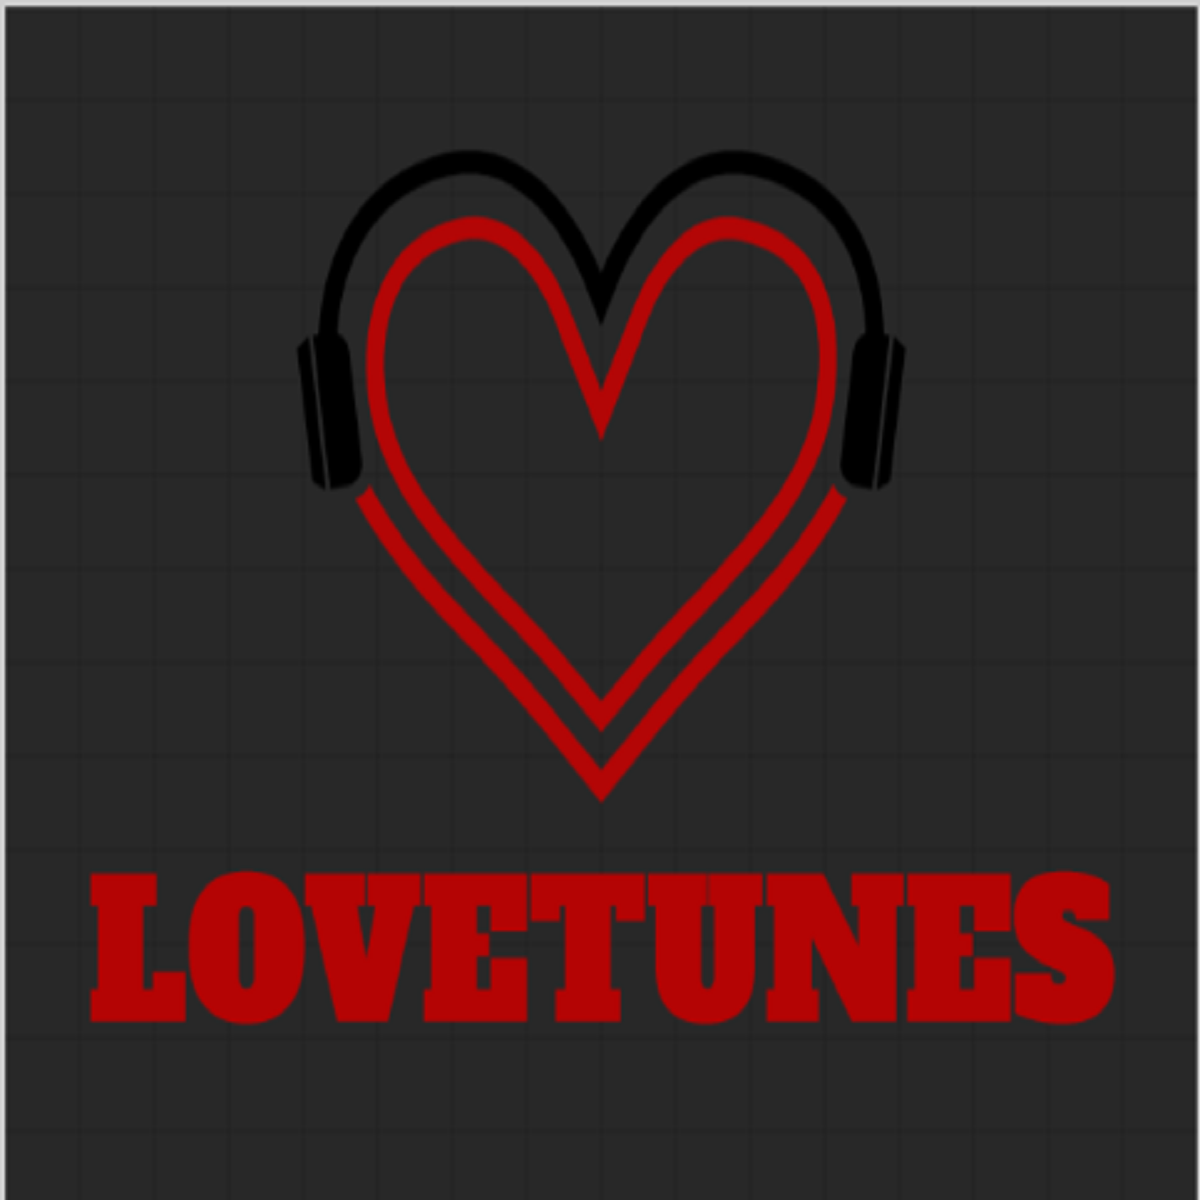 Lovetunes | Romantic Hits | Love Songs | Easy Listening